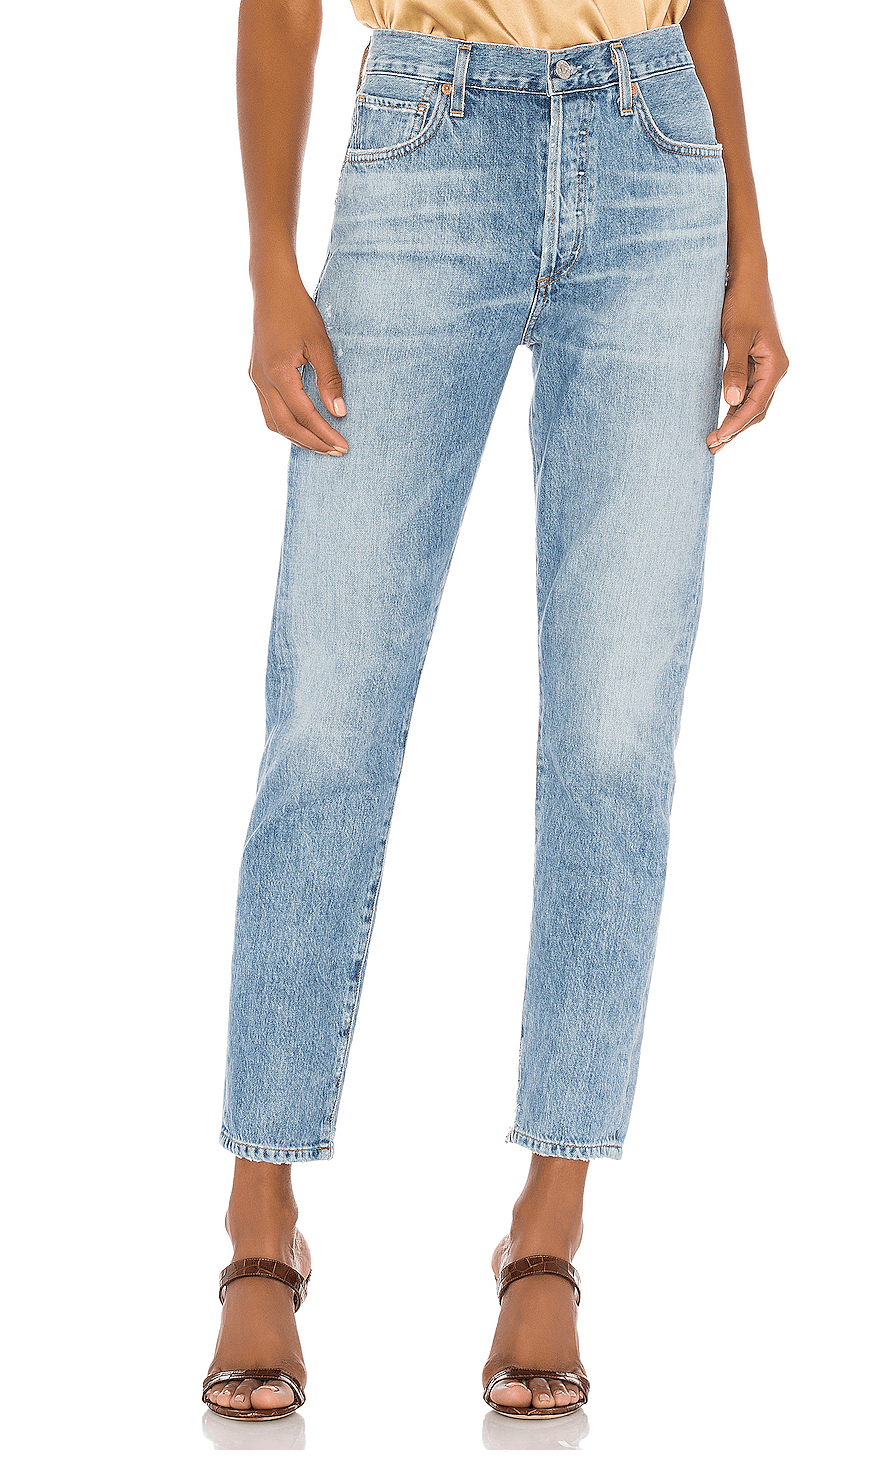 Citizens of Humanity Liya High Rise Classic Jeans